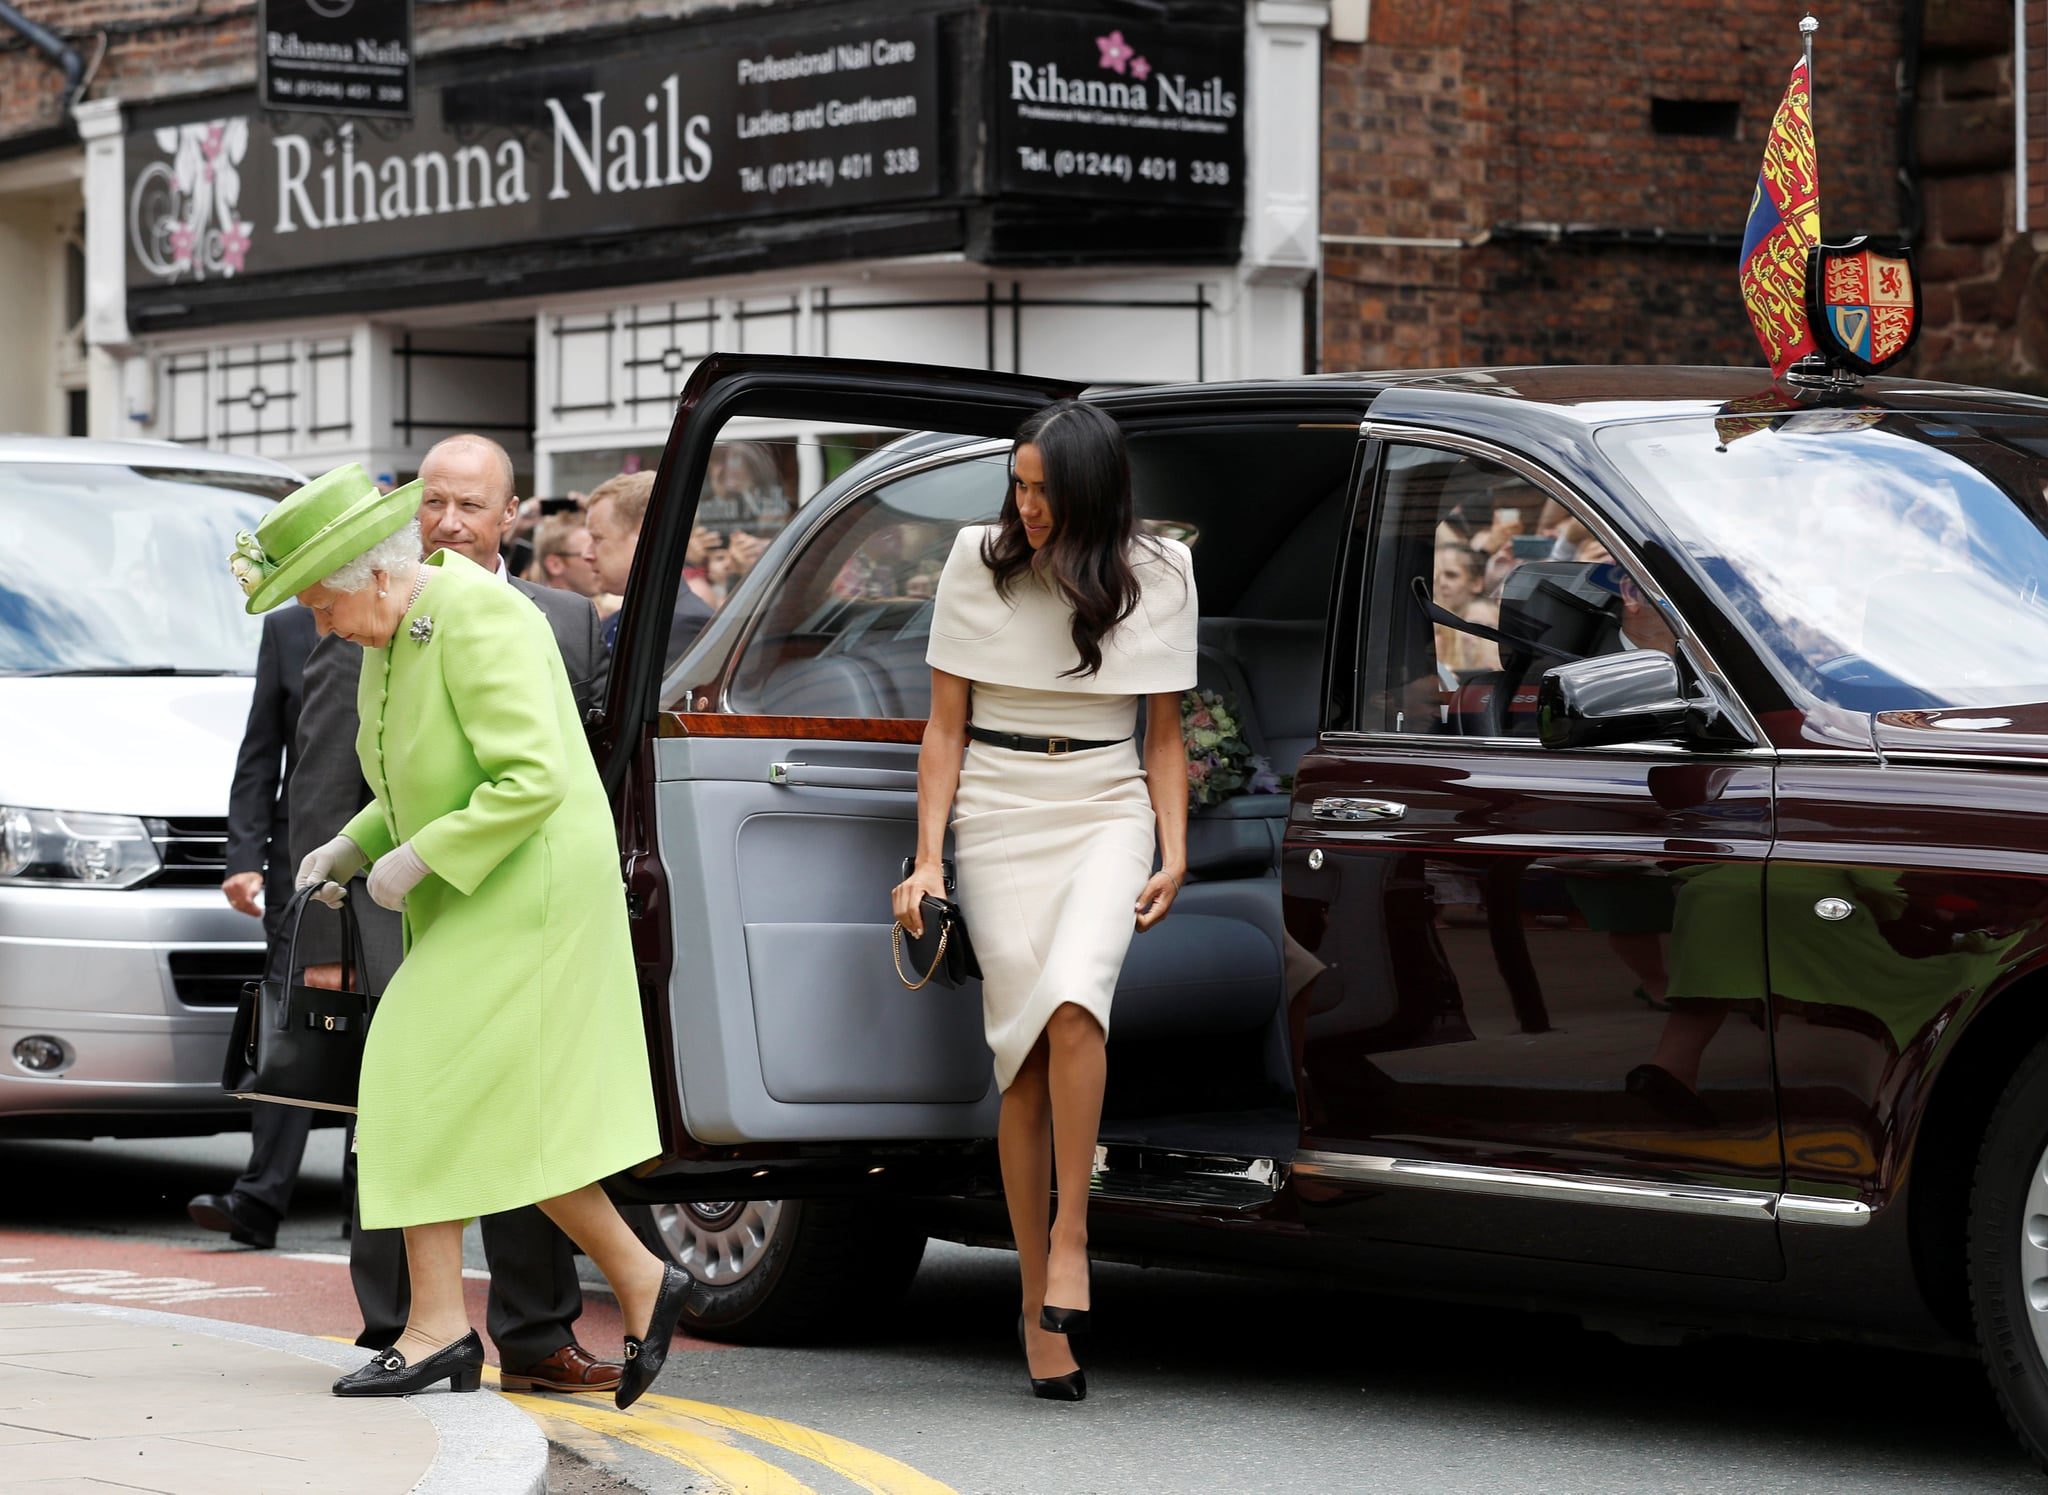 CHESTER, ENGLAND - JUNE 14:  Queen Elizabeth II and Meghan, Duchess of Sussex arrive from their car for their visit to the Storyhouse on June 14, 2018 in Chester, England. Meghan Markle married Prince Harry last month to become The Duchess of Sussex and this is her first engagement with the Queen. During the visit the pair will open a road bridge in Widnes and visit The Storyhouse and Town Hall in Chester.  (Photo by Phil Noble - WPA Pool/Getty Images)